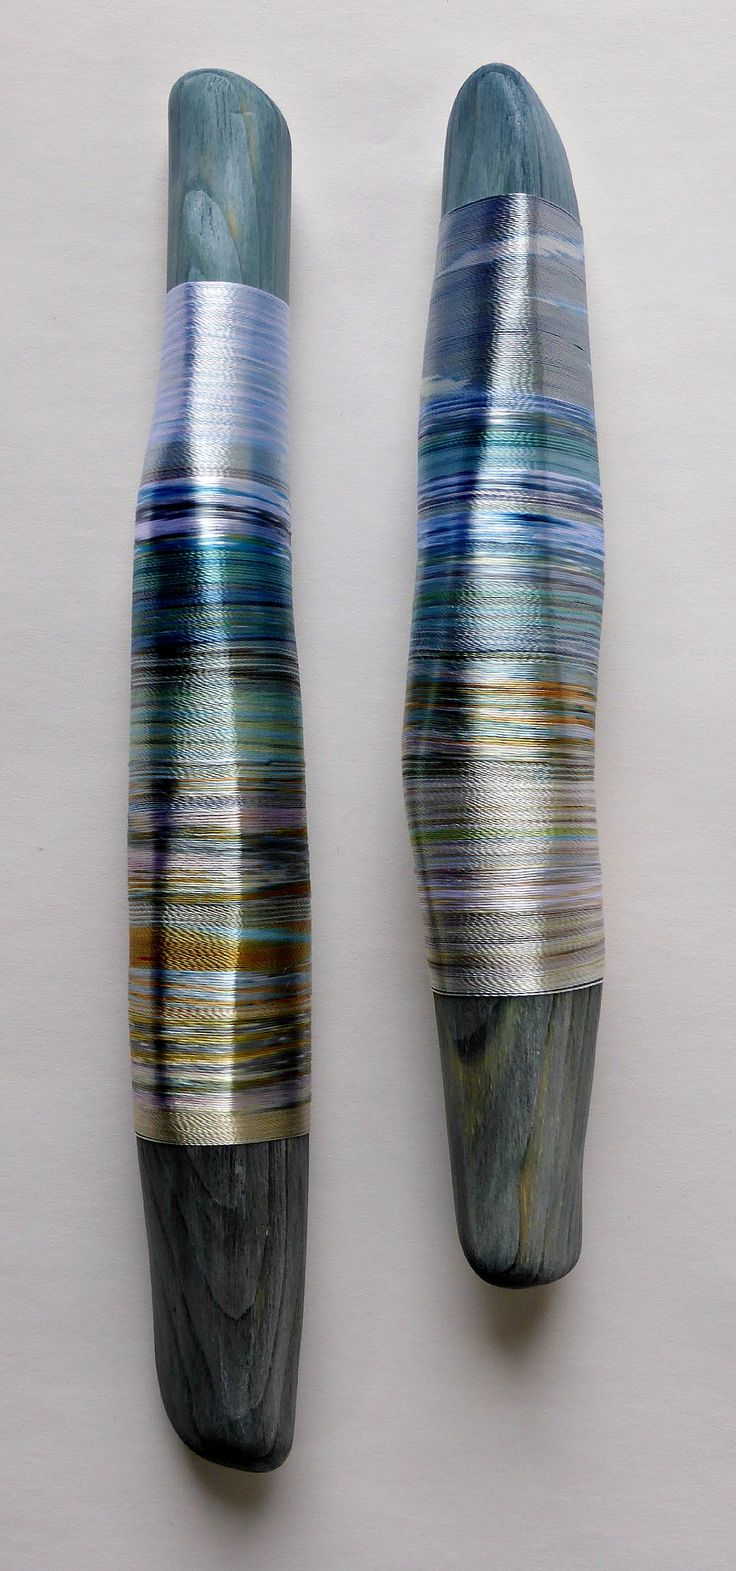 Helena Emmans | Rhythms of Reflected Shorelines | Hand-dyed threads